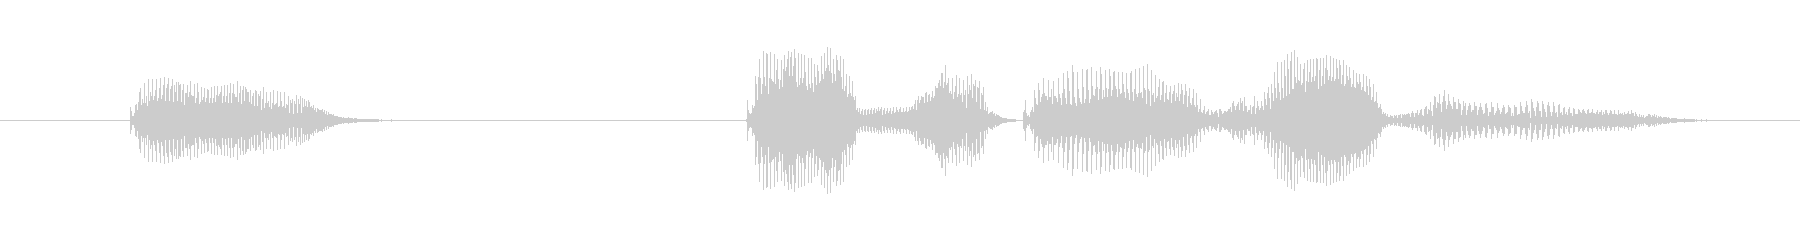 Yeah, but it's okay (female)'s unreproduced waveform